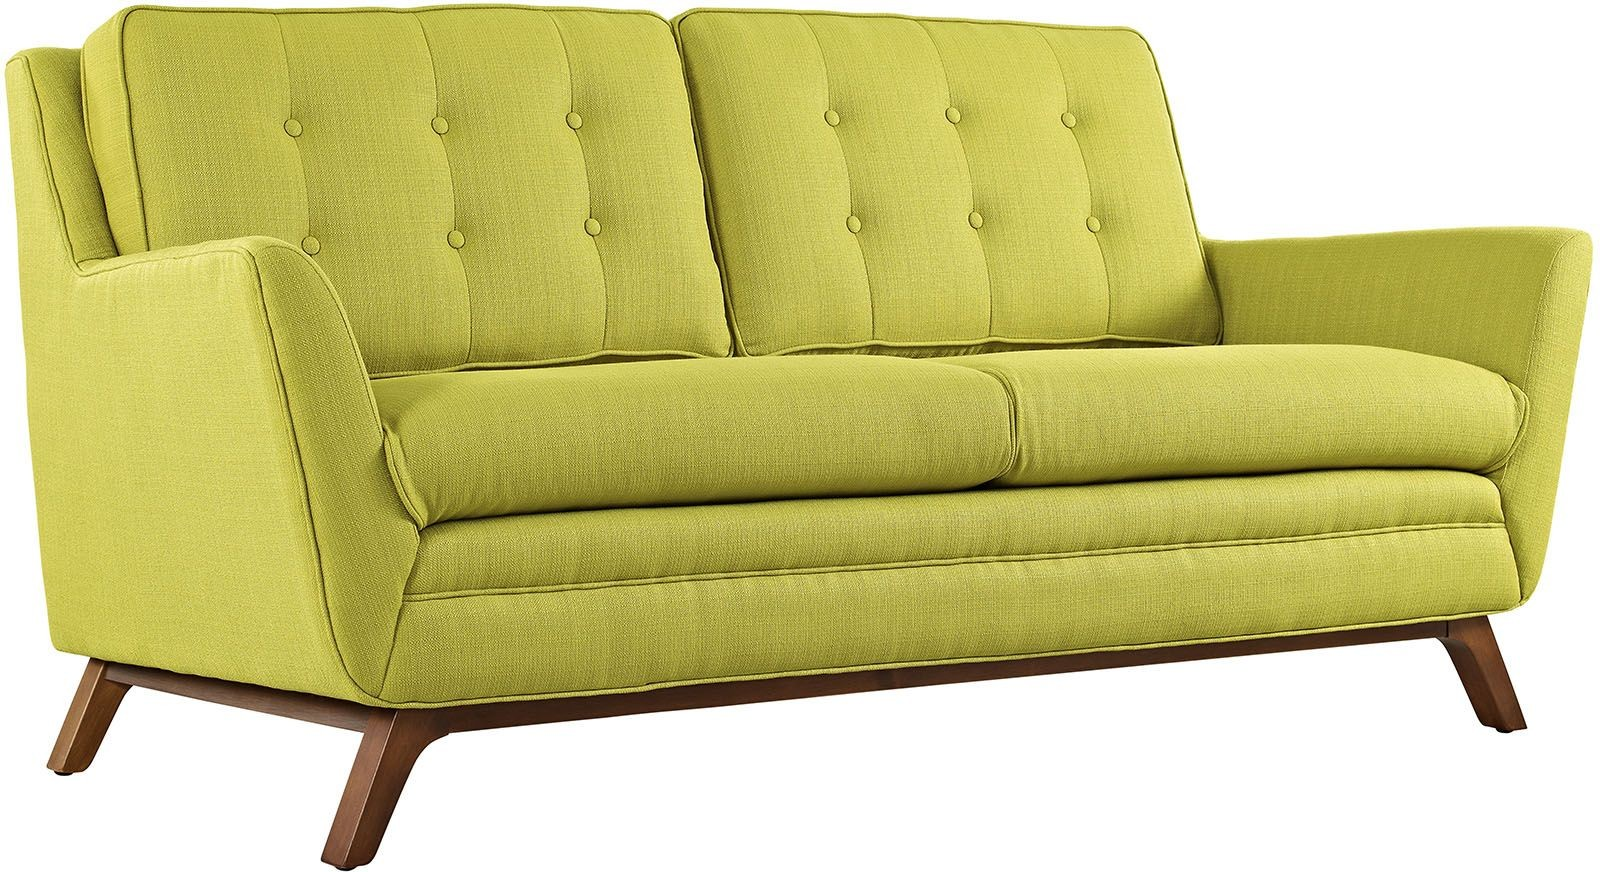 Beguile Wheatgrass Upholstered Loveseat From Renegade Coleman Furniture